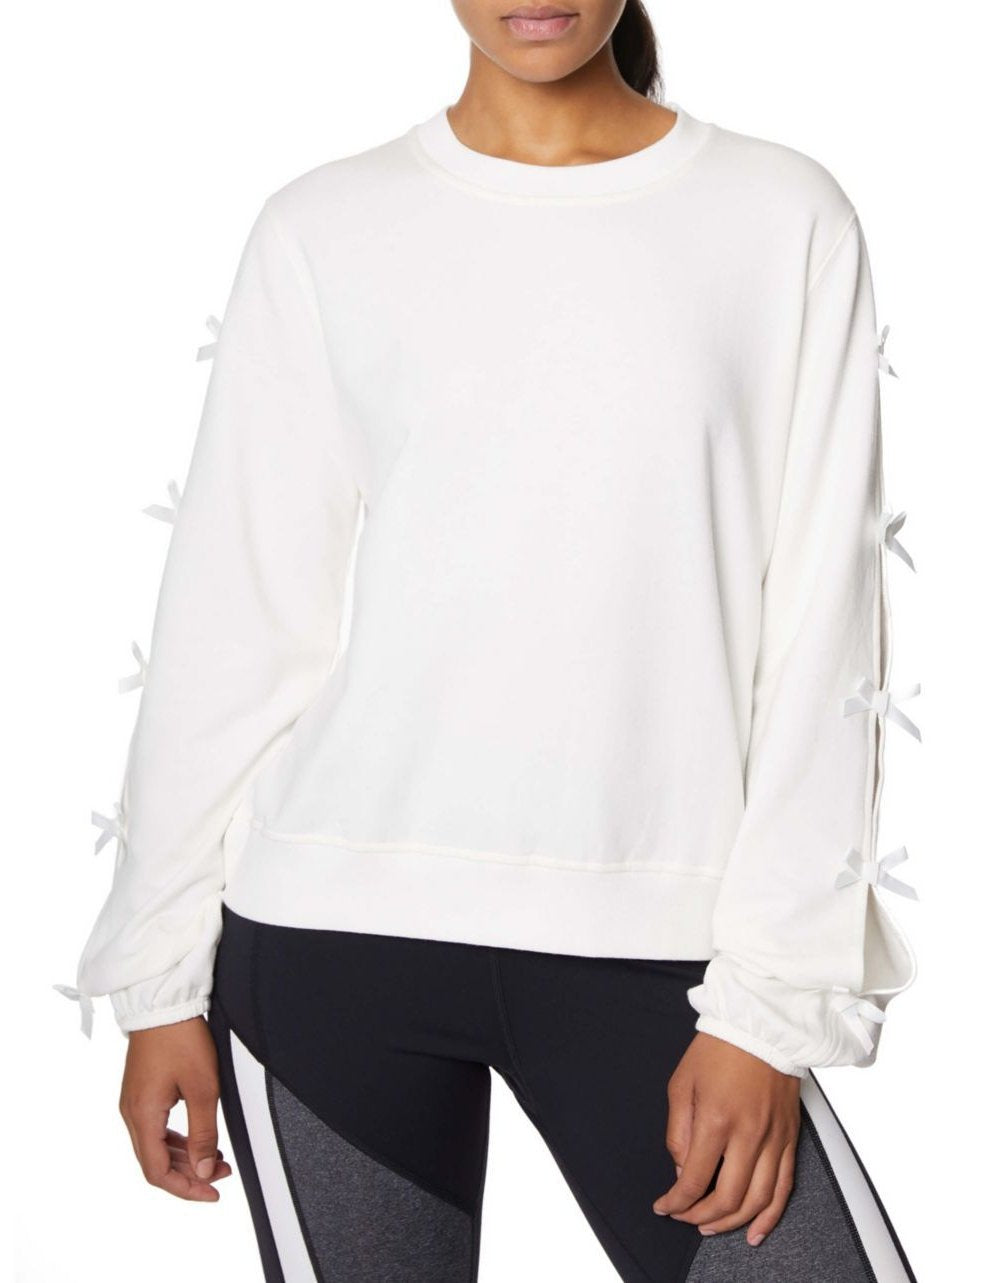 BOW ALL ABOUT IT SWEATSHIRT IVORY - APPAREL - Betsey Johnson